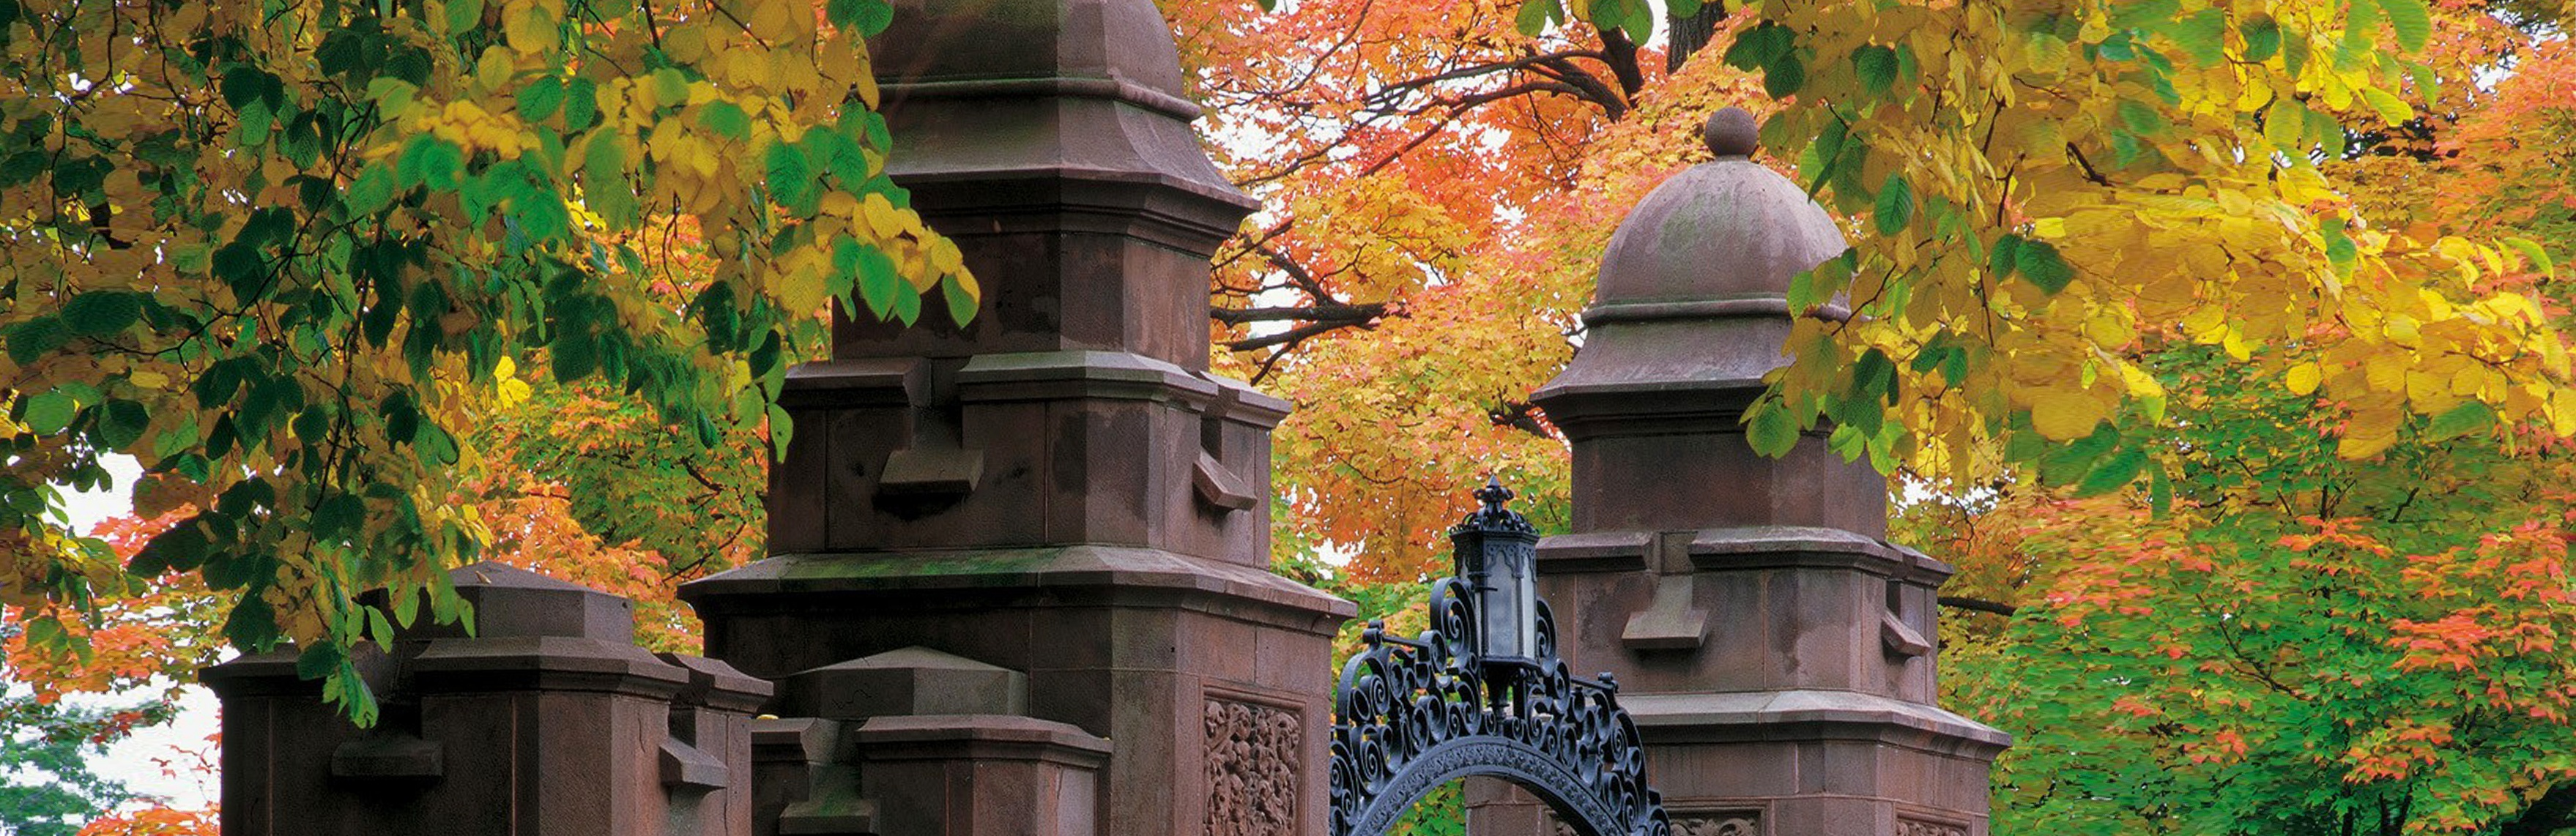 The gates of Mount Holyoke College in the fall